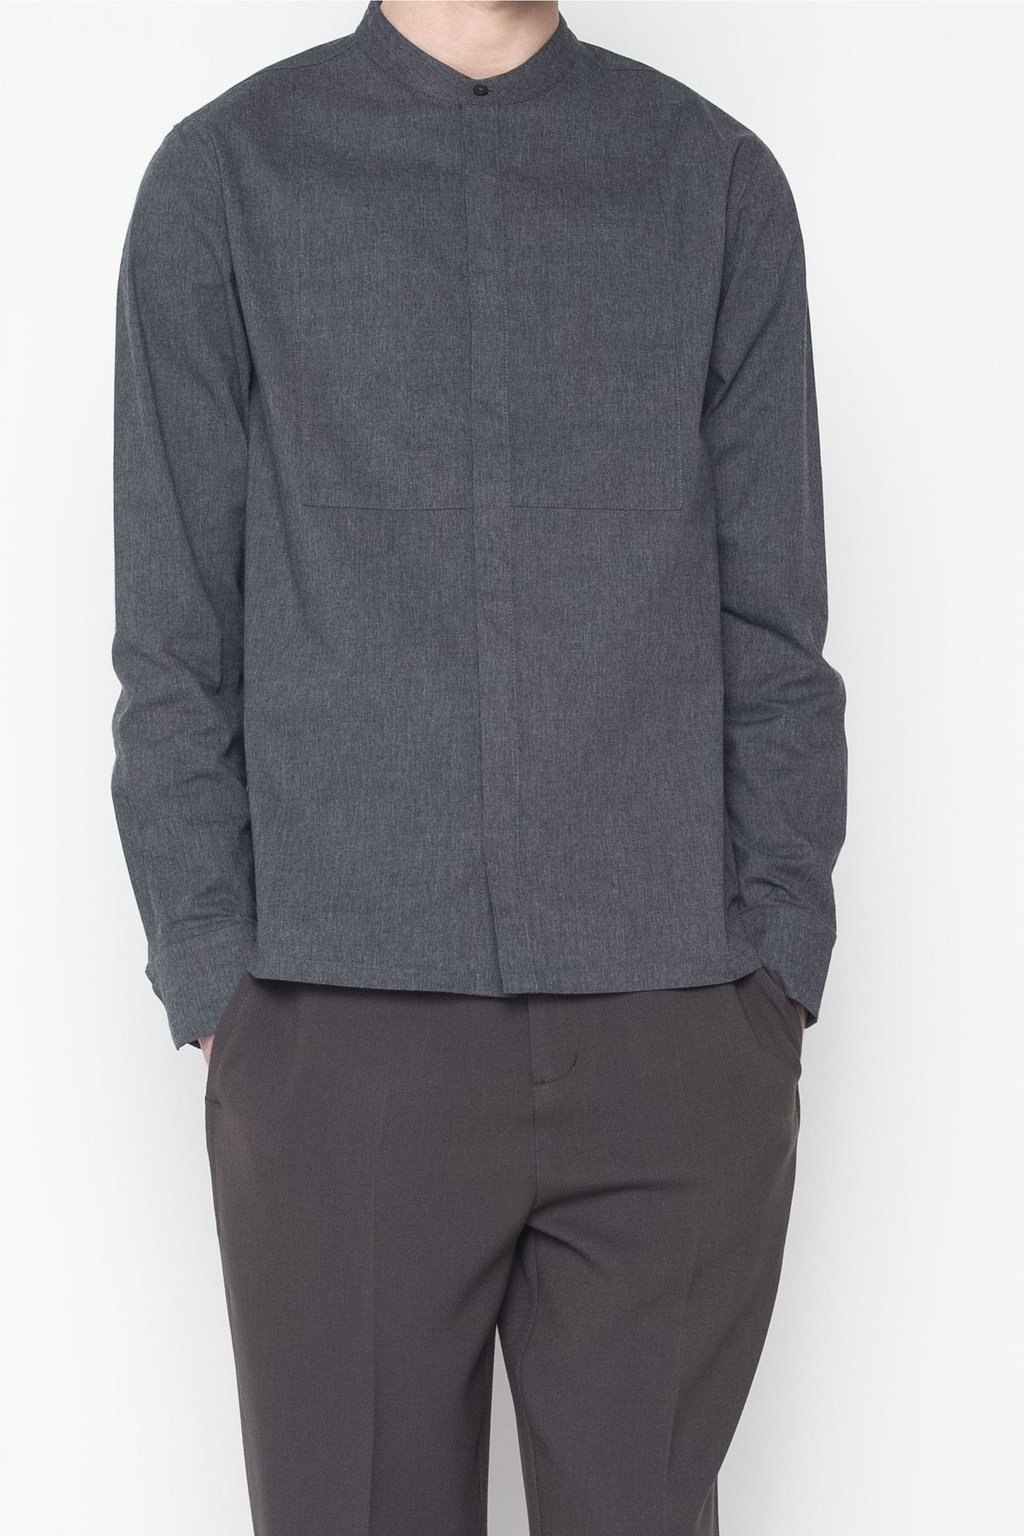 Shirt 2173 Dark Gray 7